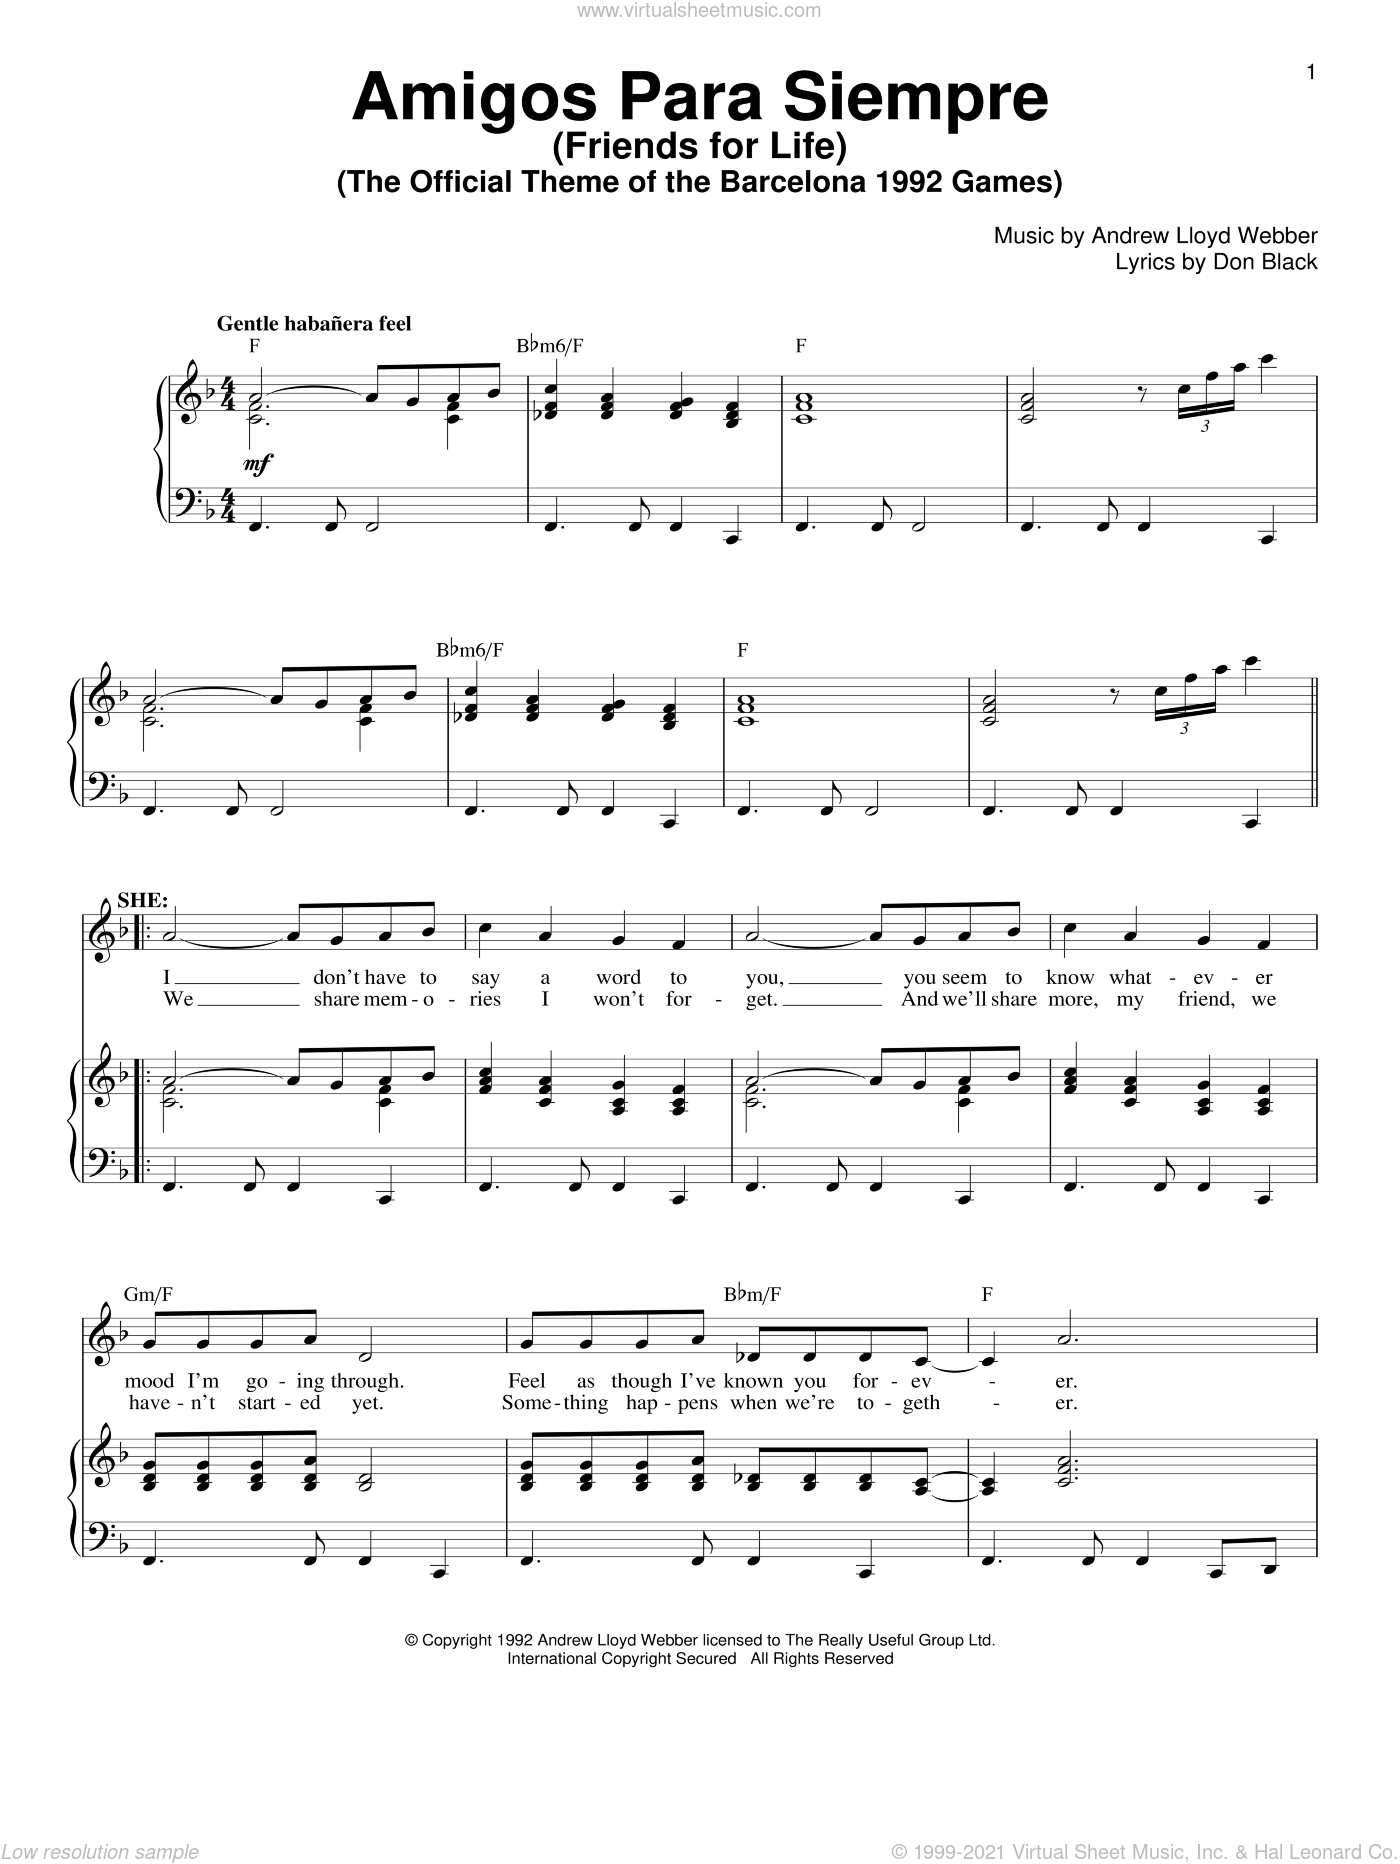 Amigos Para Siempre (Friends For Life) sheet music for voice and piano by Don Black